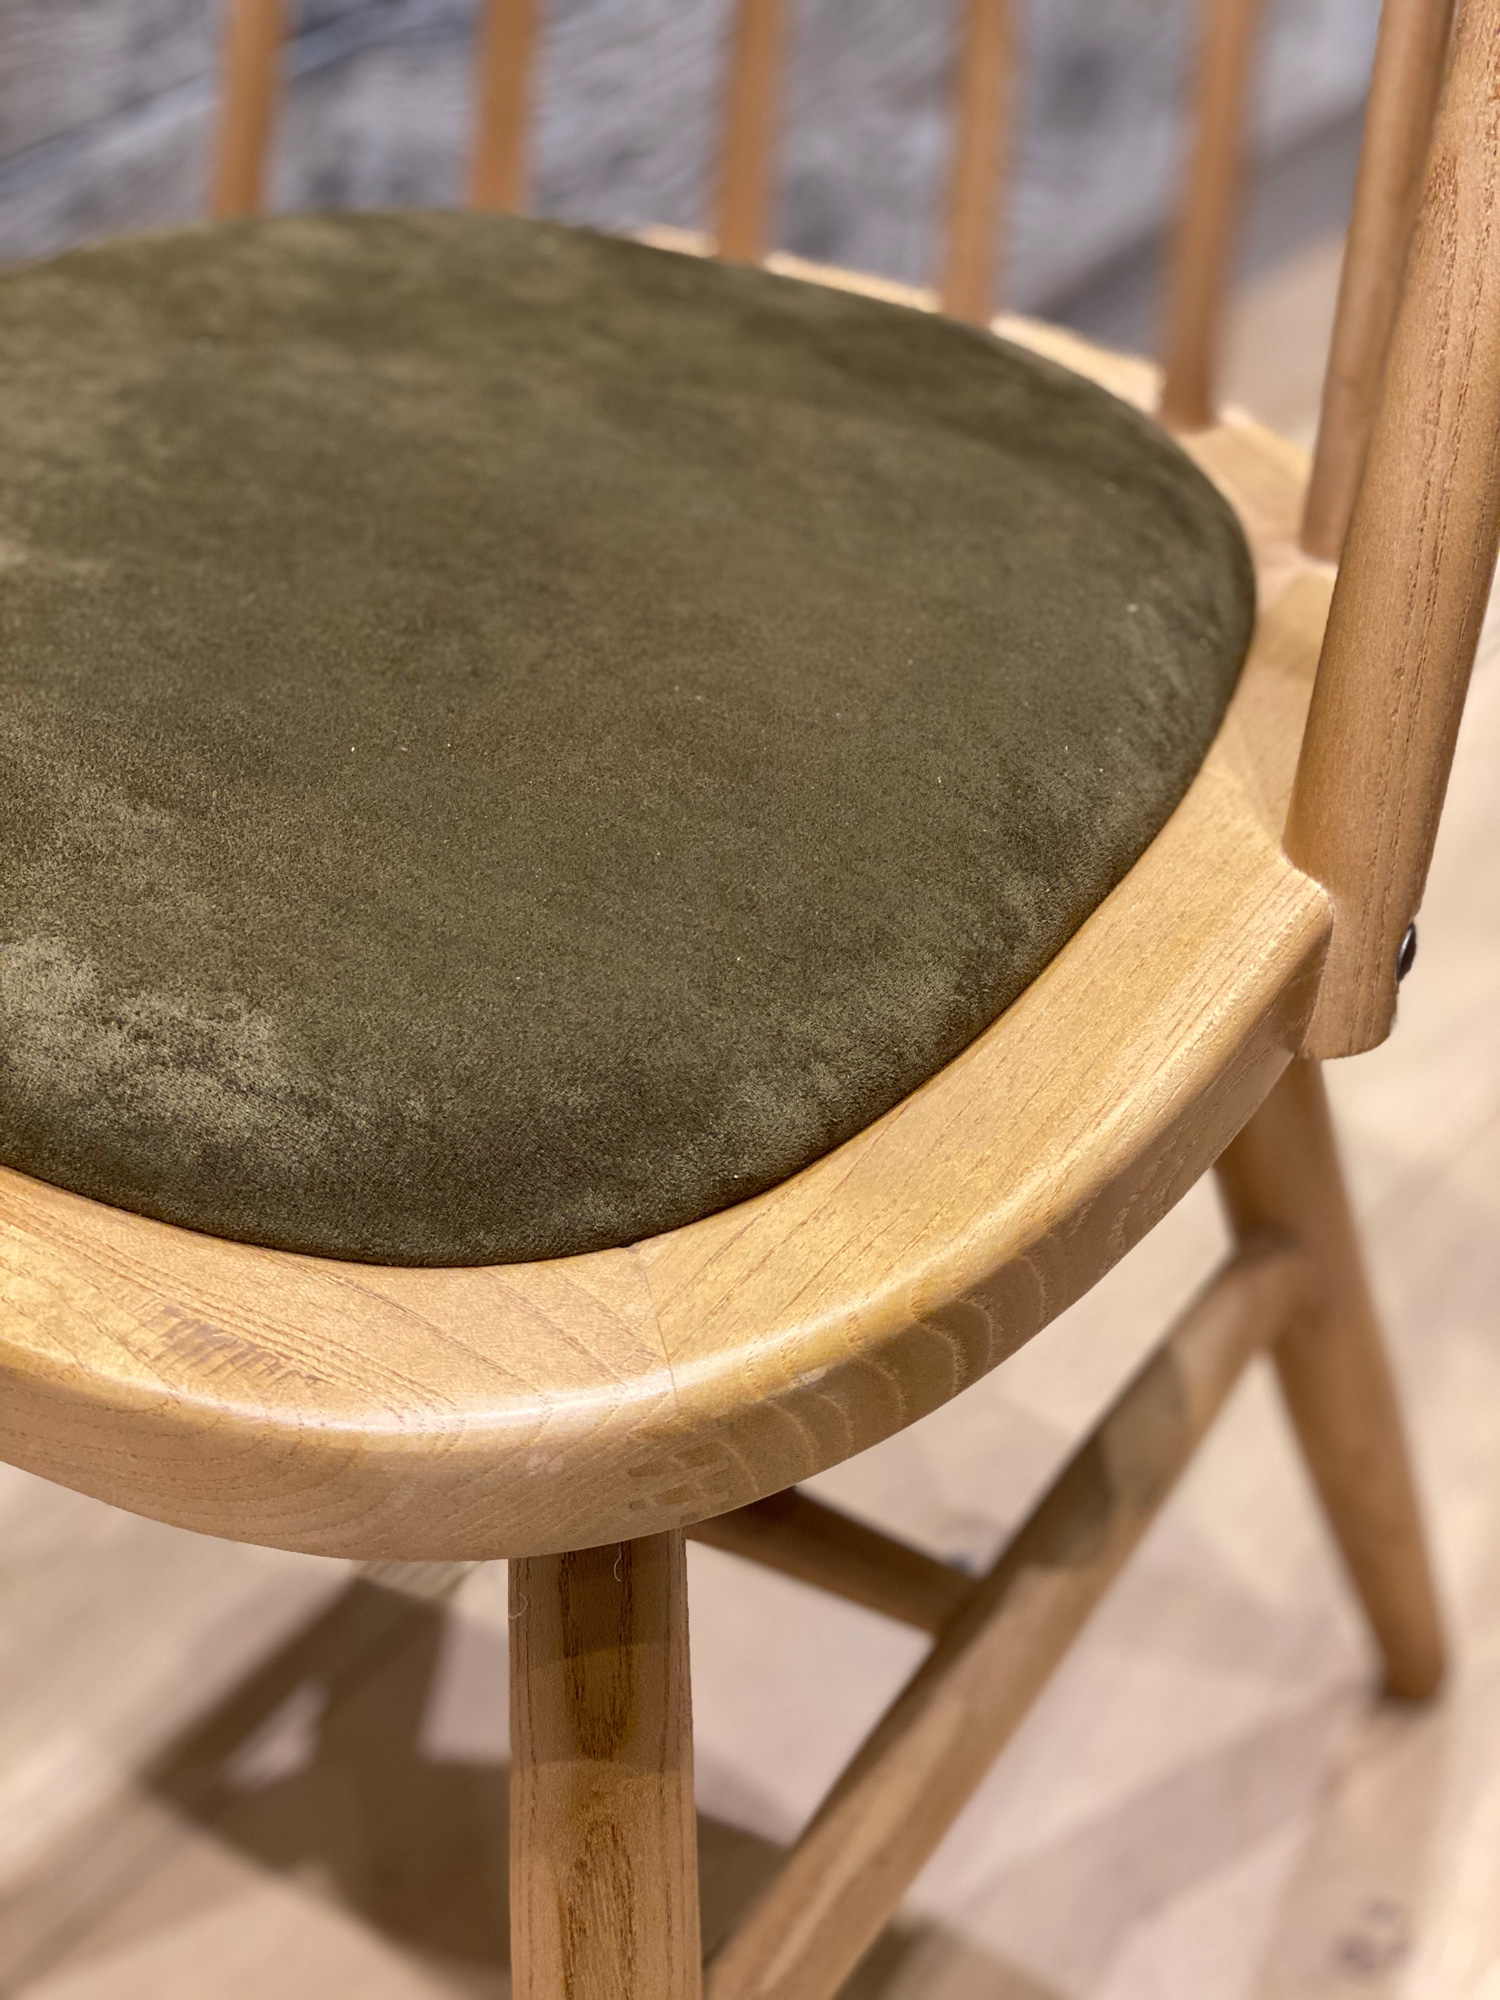 Olive green seat on oak dining chair